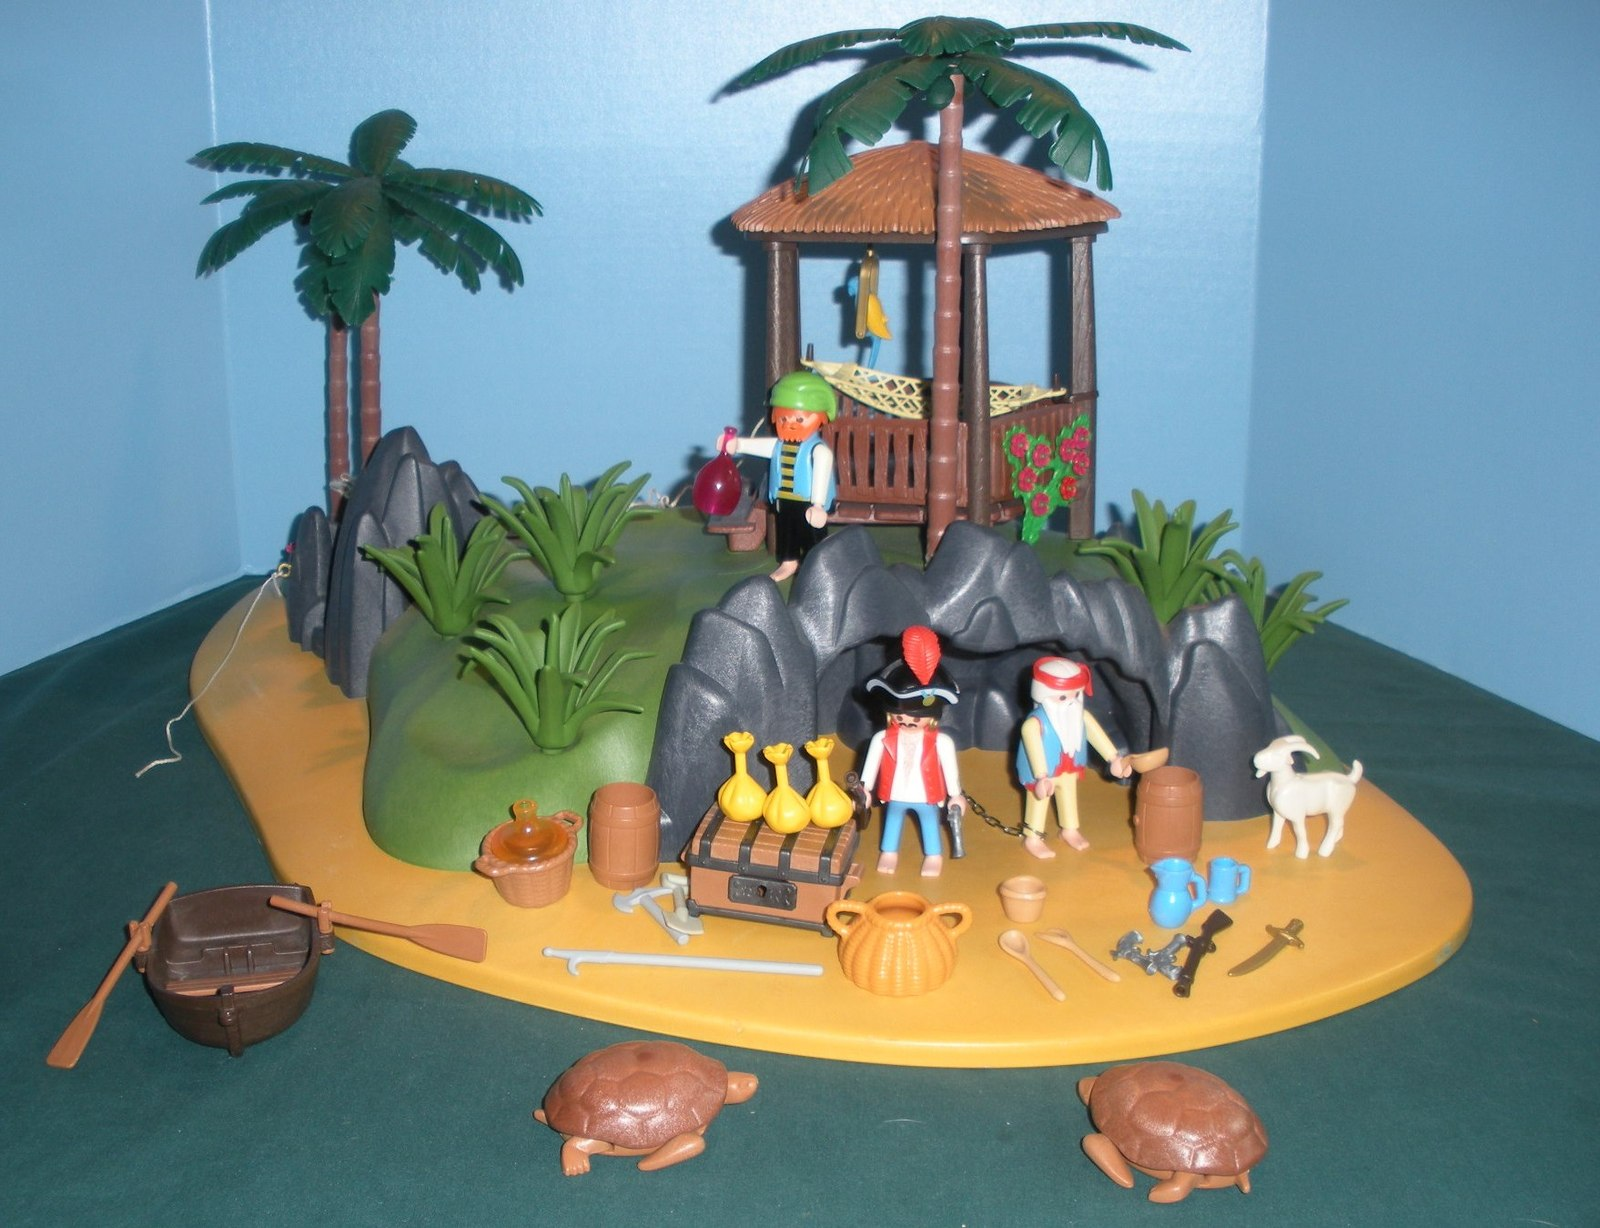 RARE Vintage Playmobil #3799 Pirates' Secret Island Comp. w/Box/ EXC! (retired) image 3